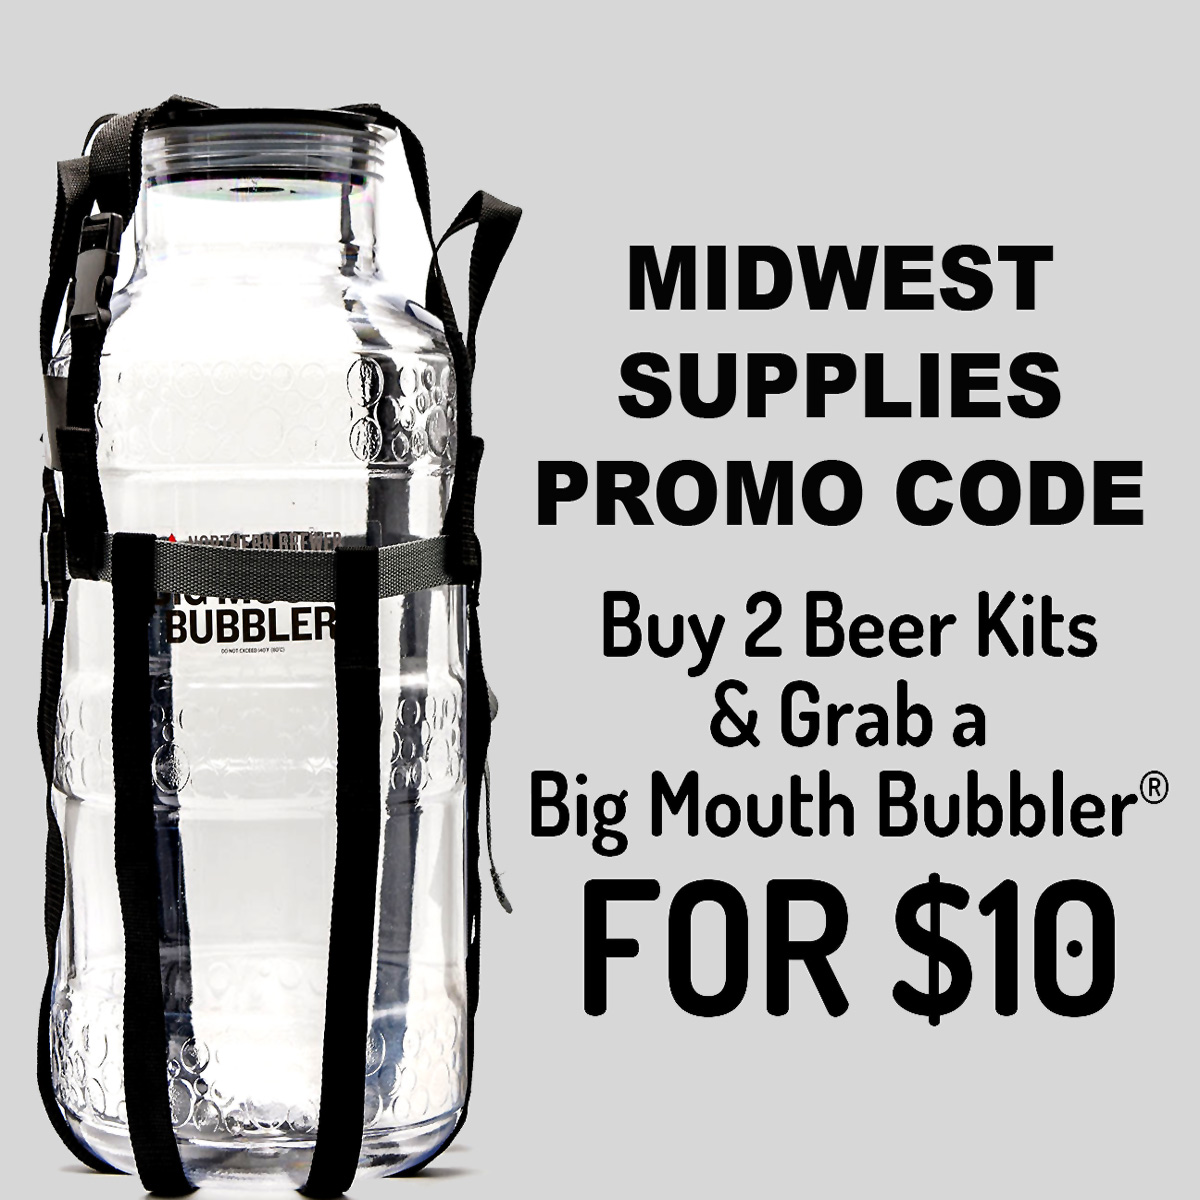 Home Wine Making Coupon Codes for Buy 2 Beer Kits and get a Free Fermenter Coupon Code for MidwestSupplies.com Coupon Code